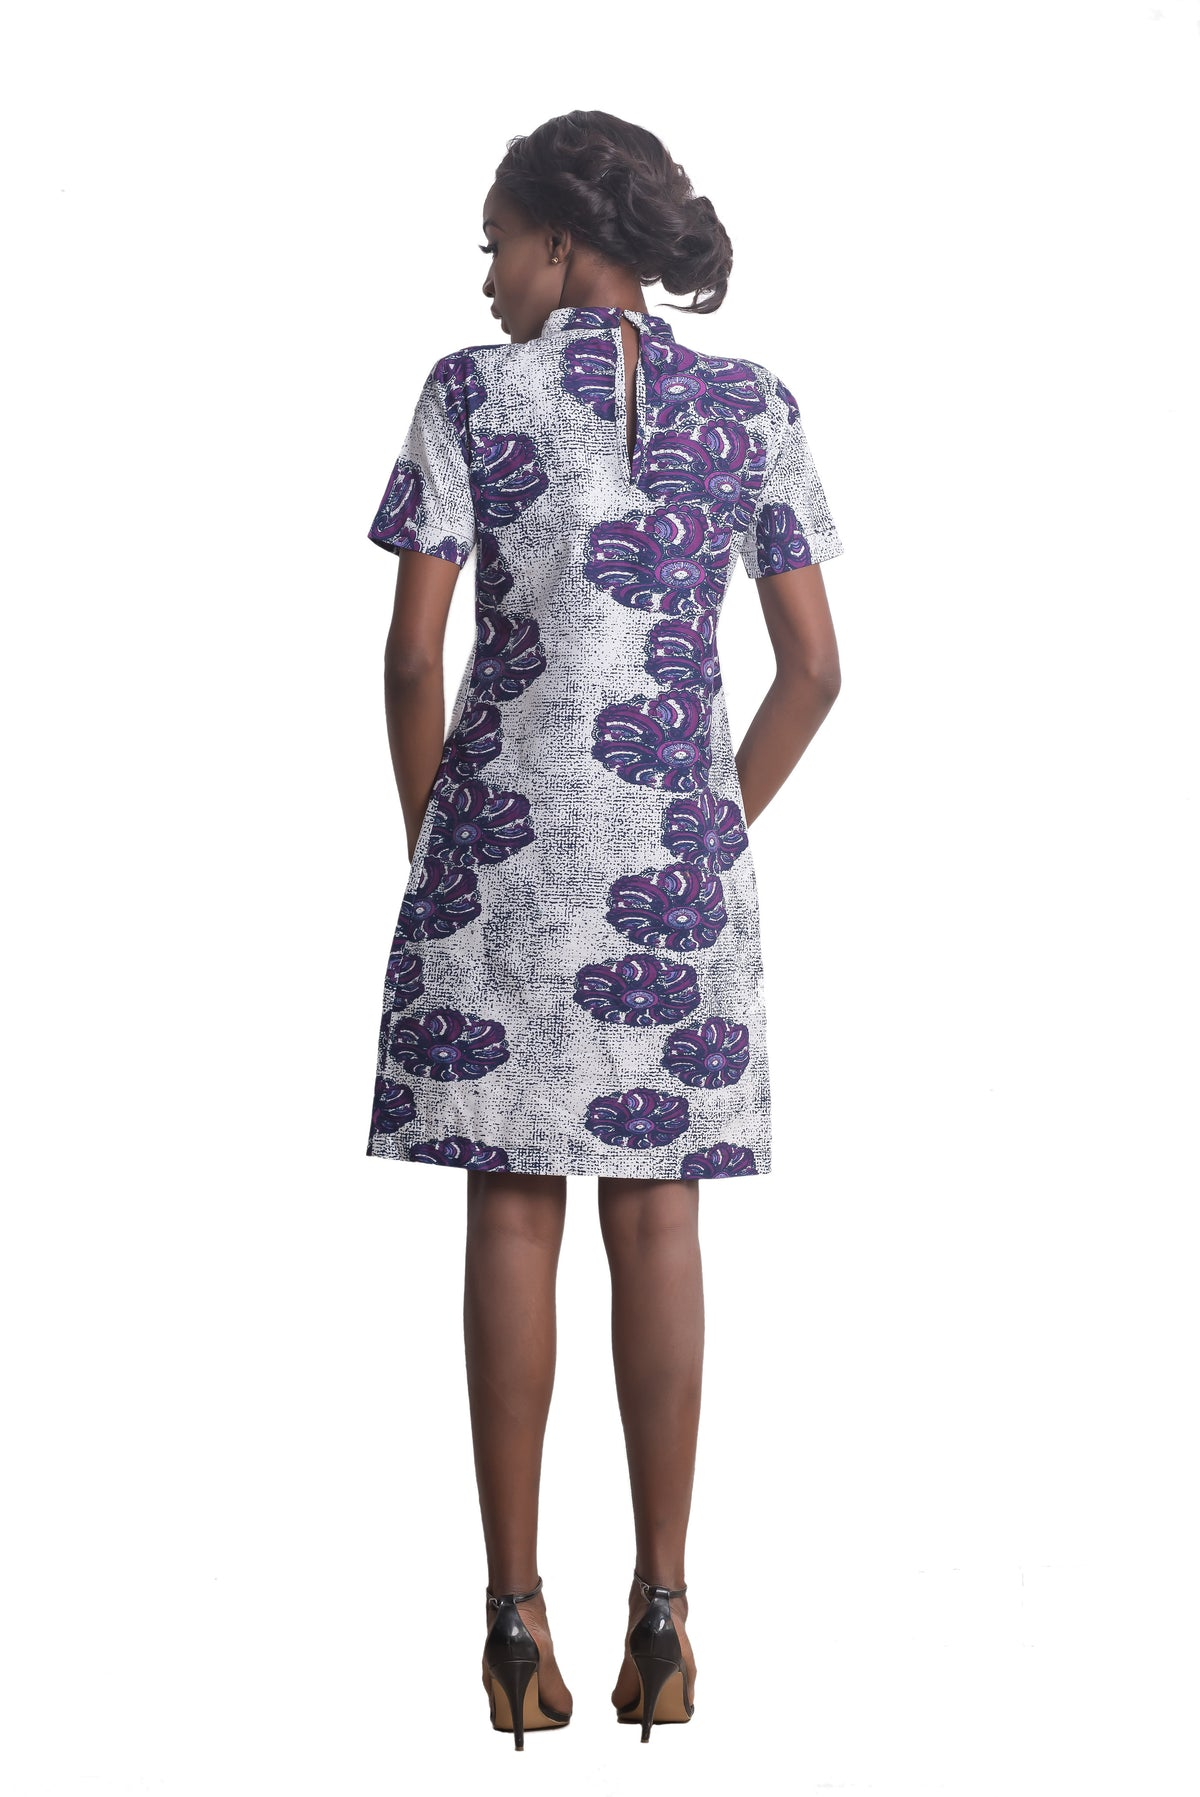 Ohemaa A-Line Dress